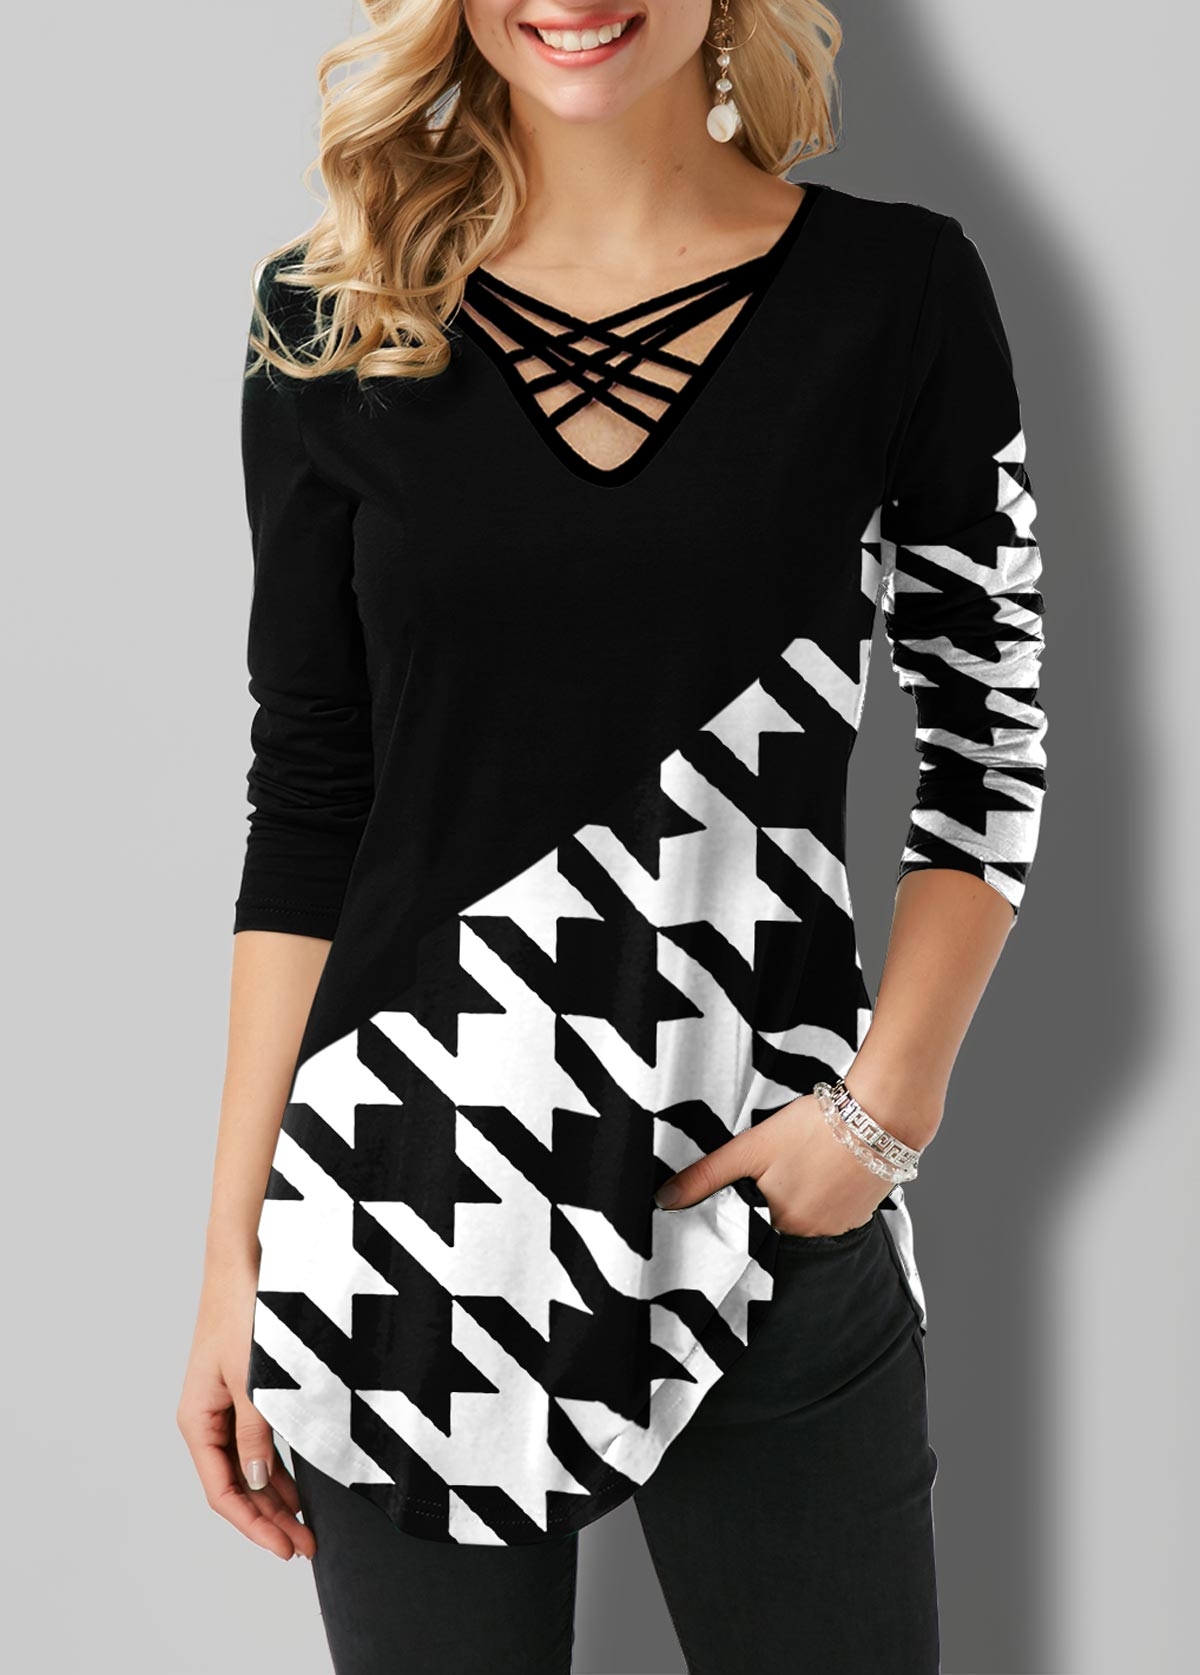 ROTITA Houndstooth Print Strappy Neck Contrast T Shirt